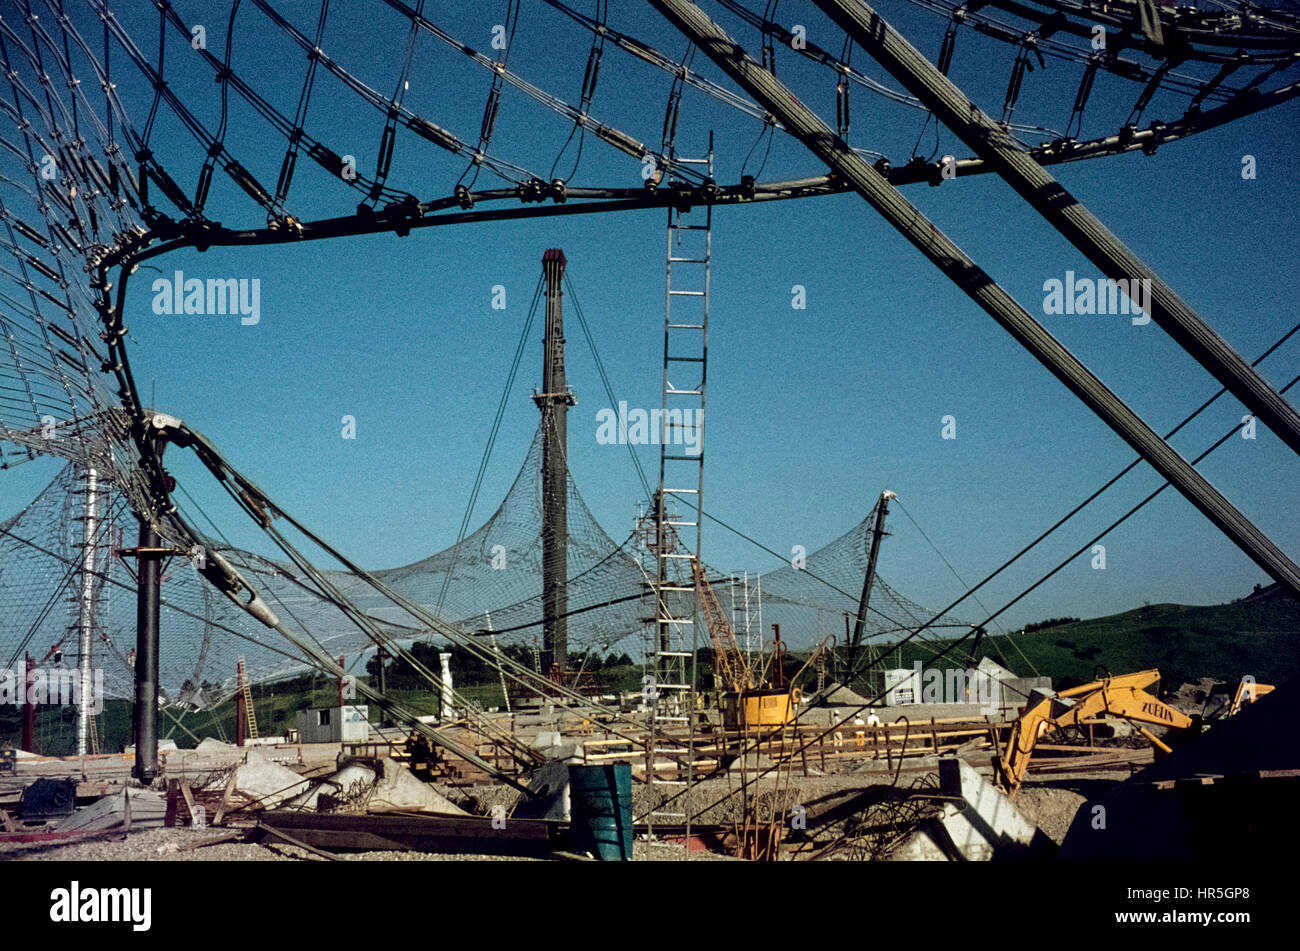 The Olympic Park of Munich, site of the Olympic Games 1972, under construction. Bau des Münchner Olympiaparks - Stock Image